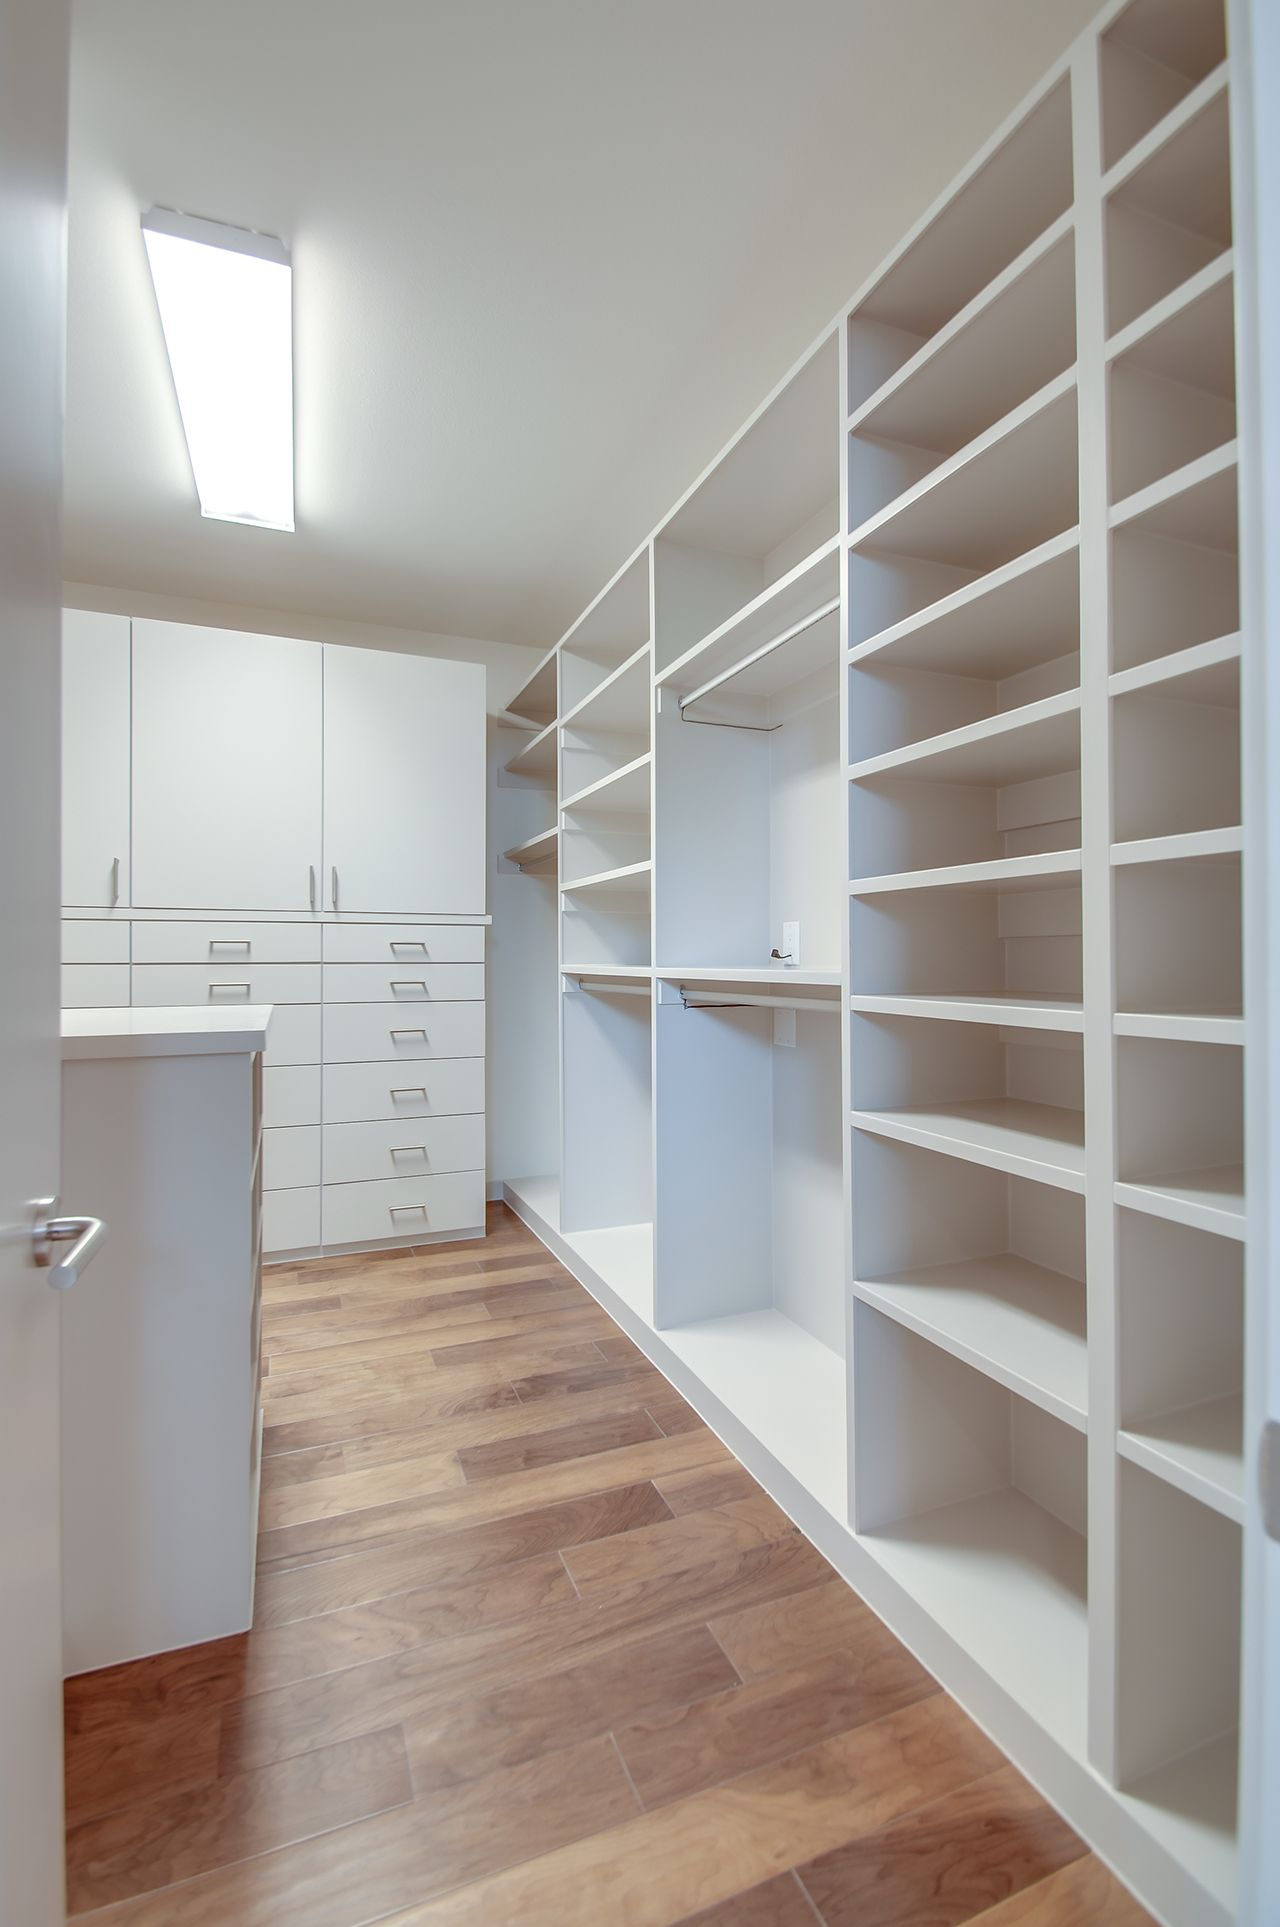 Awesome Huge Walk In Master Closet White Hanging Rods Open Shelves Closed Cabinets With Closets